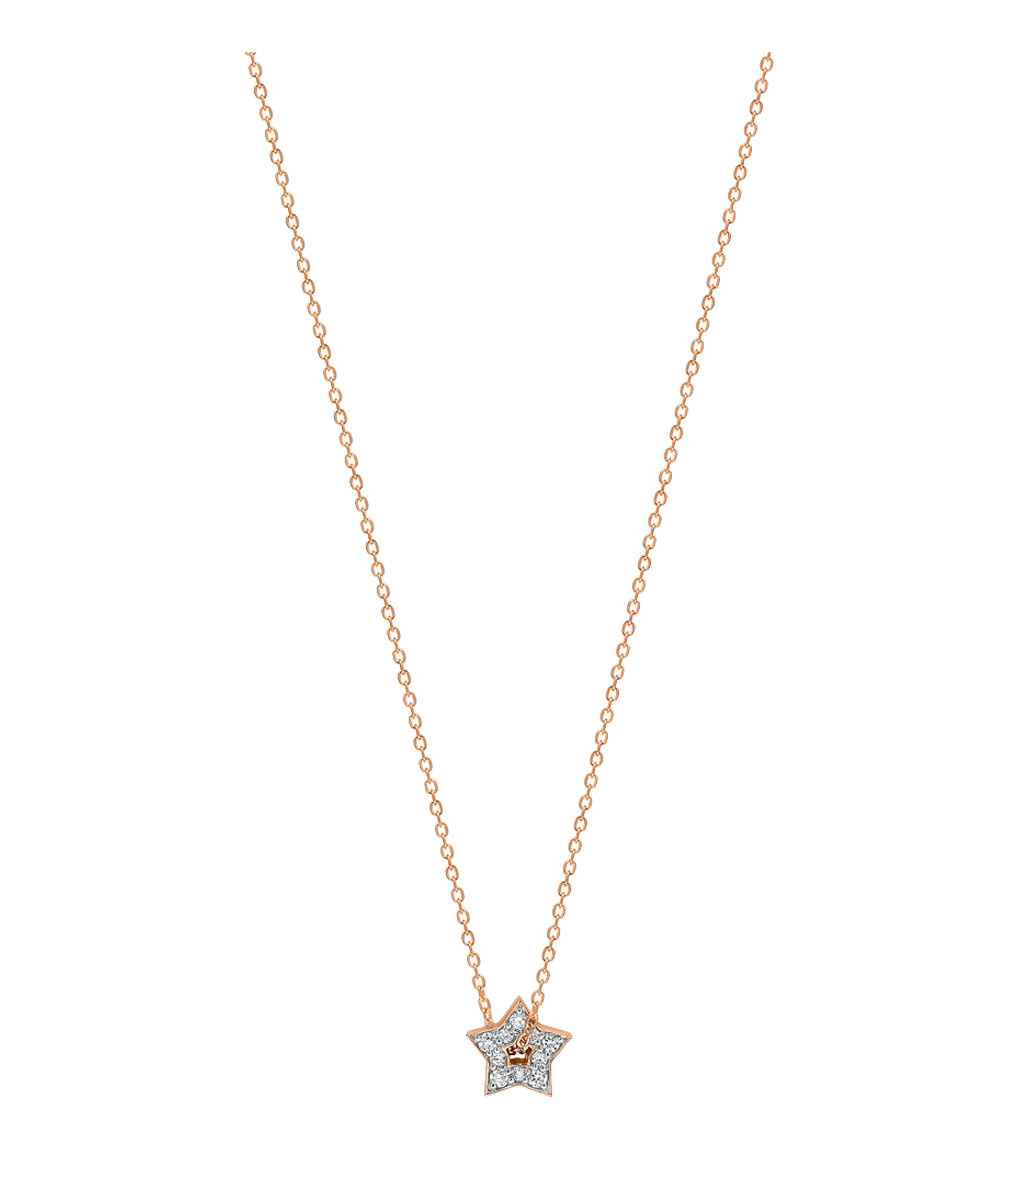 GINETTE_NY - Collier Milky Way Mini Étoile Or Rose Diamants